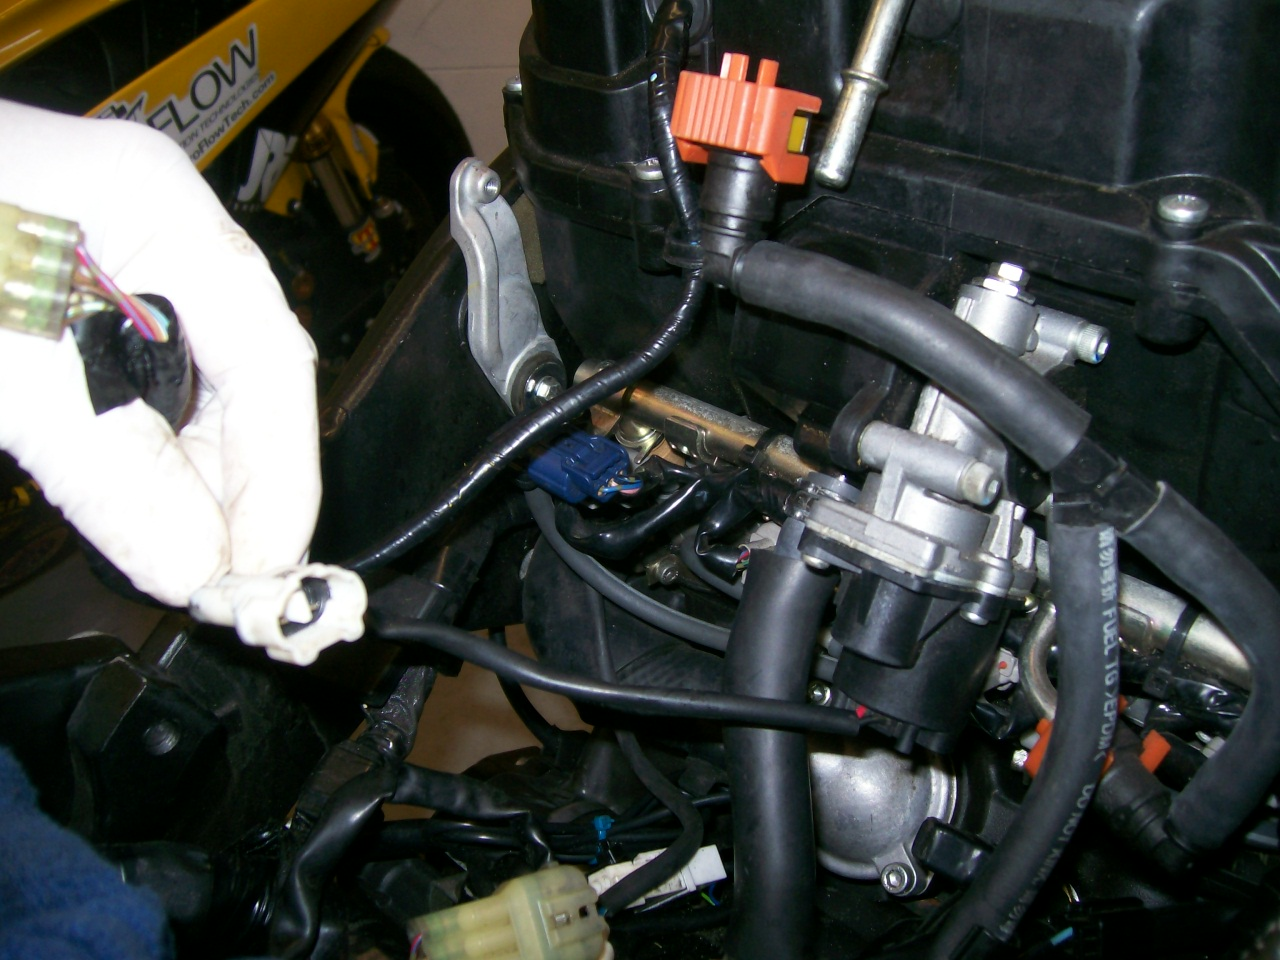 2008 R6 Fuel Pump System Wiring Diagram R1 Librarydisconnect The Air Box Wires Removing Yamaha